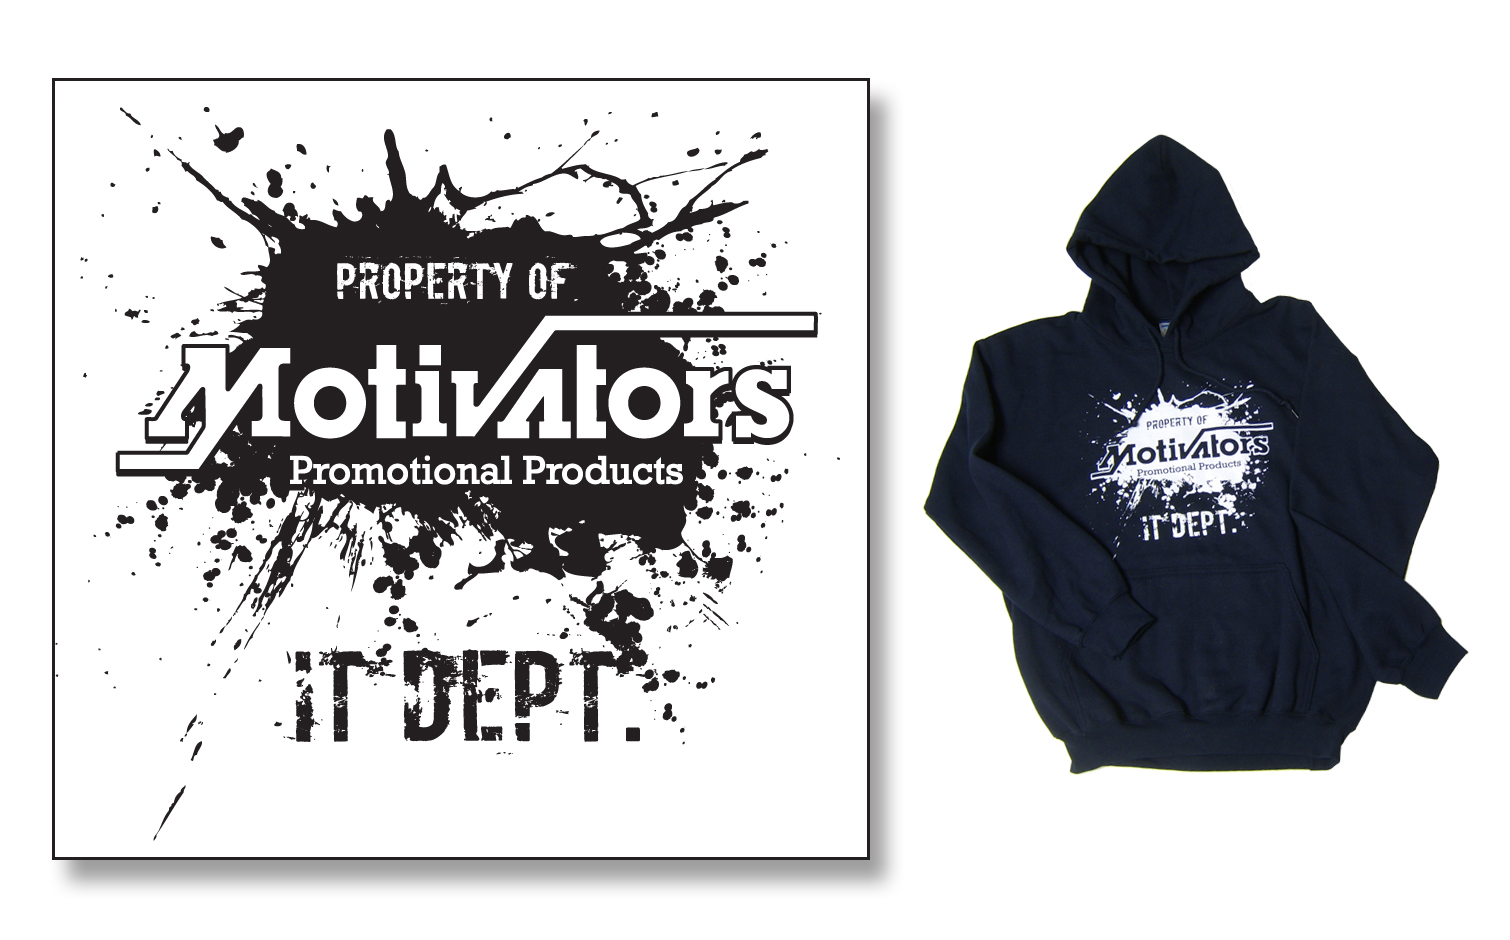 Shirt hoodie design - Hoodie Sweatshirt Design The Company Decided That They Wanted To Print Hoodie Sweatshirts For The It Dept And This Was The Design That Was Used